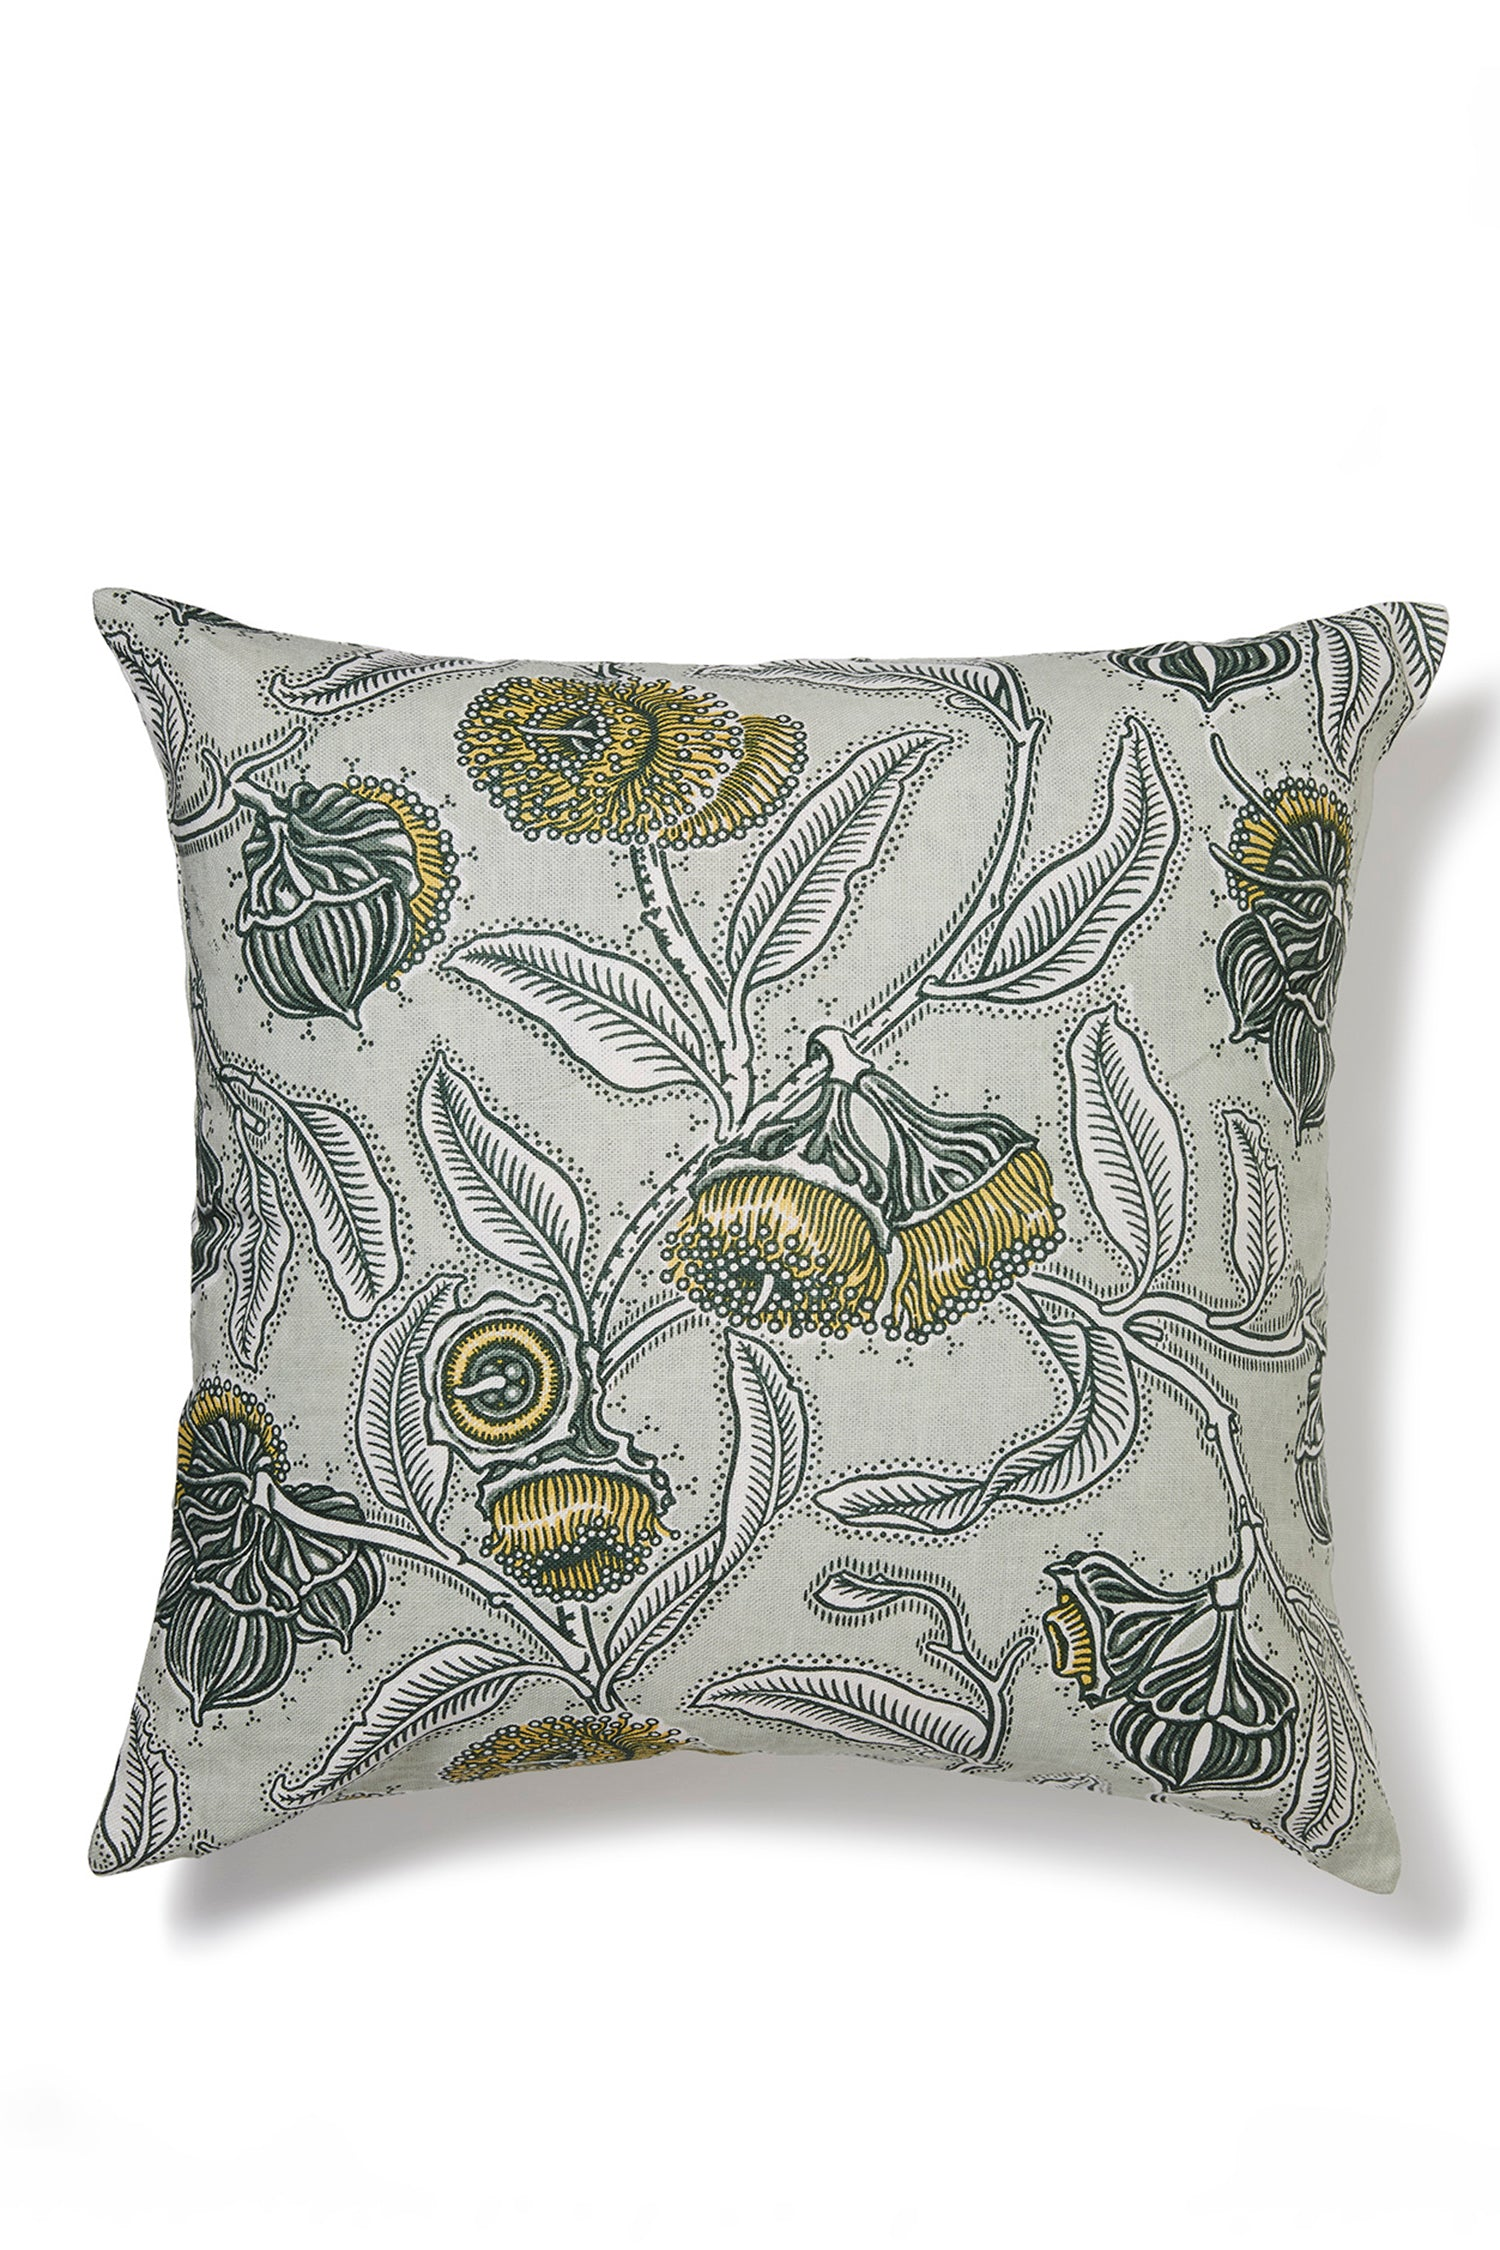 UTOPIA GOODS - 50 X 50CM CUSHION COVER - YOUNGIANA GREY